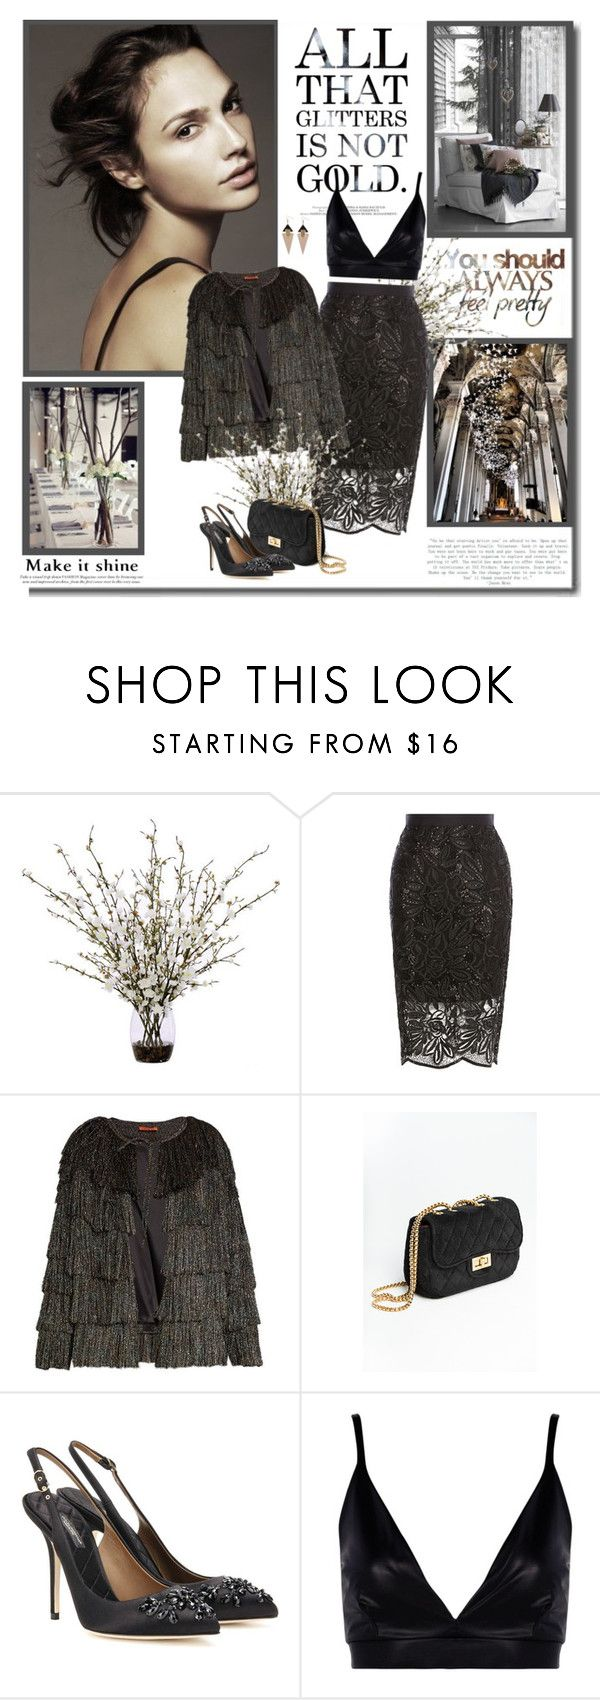 """""""Make it shine!!"""" by lilly-2711 ❤ liked on Polyvore featuring Lux-Art Silks, Coast, Missoni, Dolce&Gabbana, Boohoo and Toolally"""